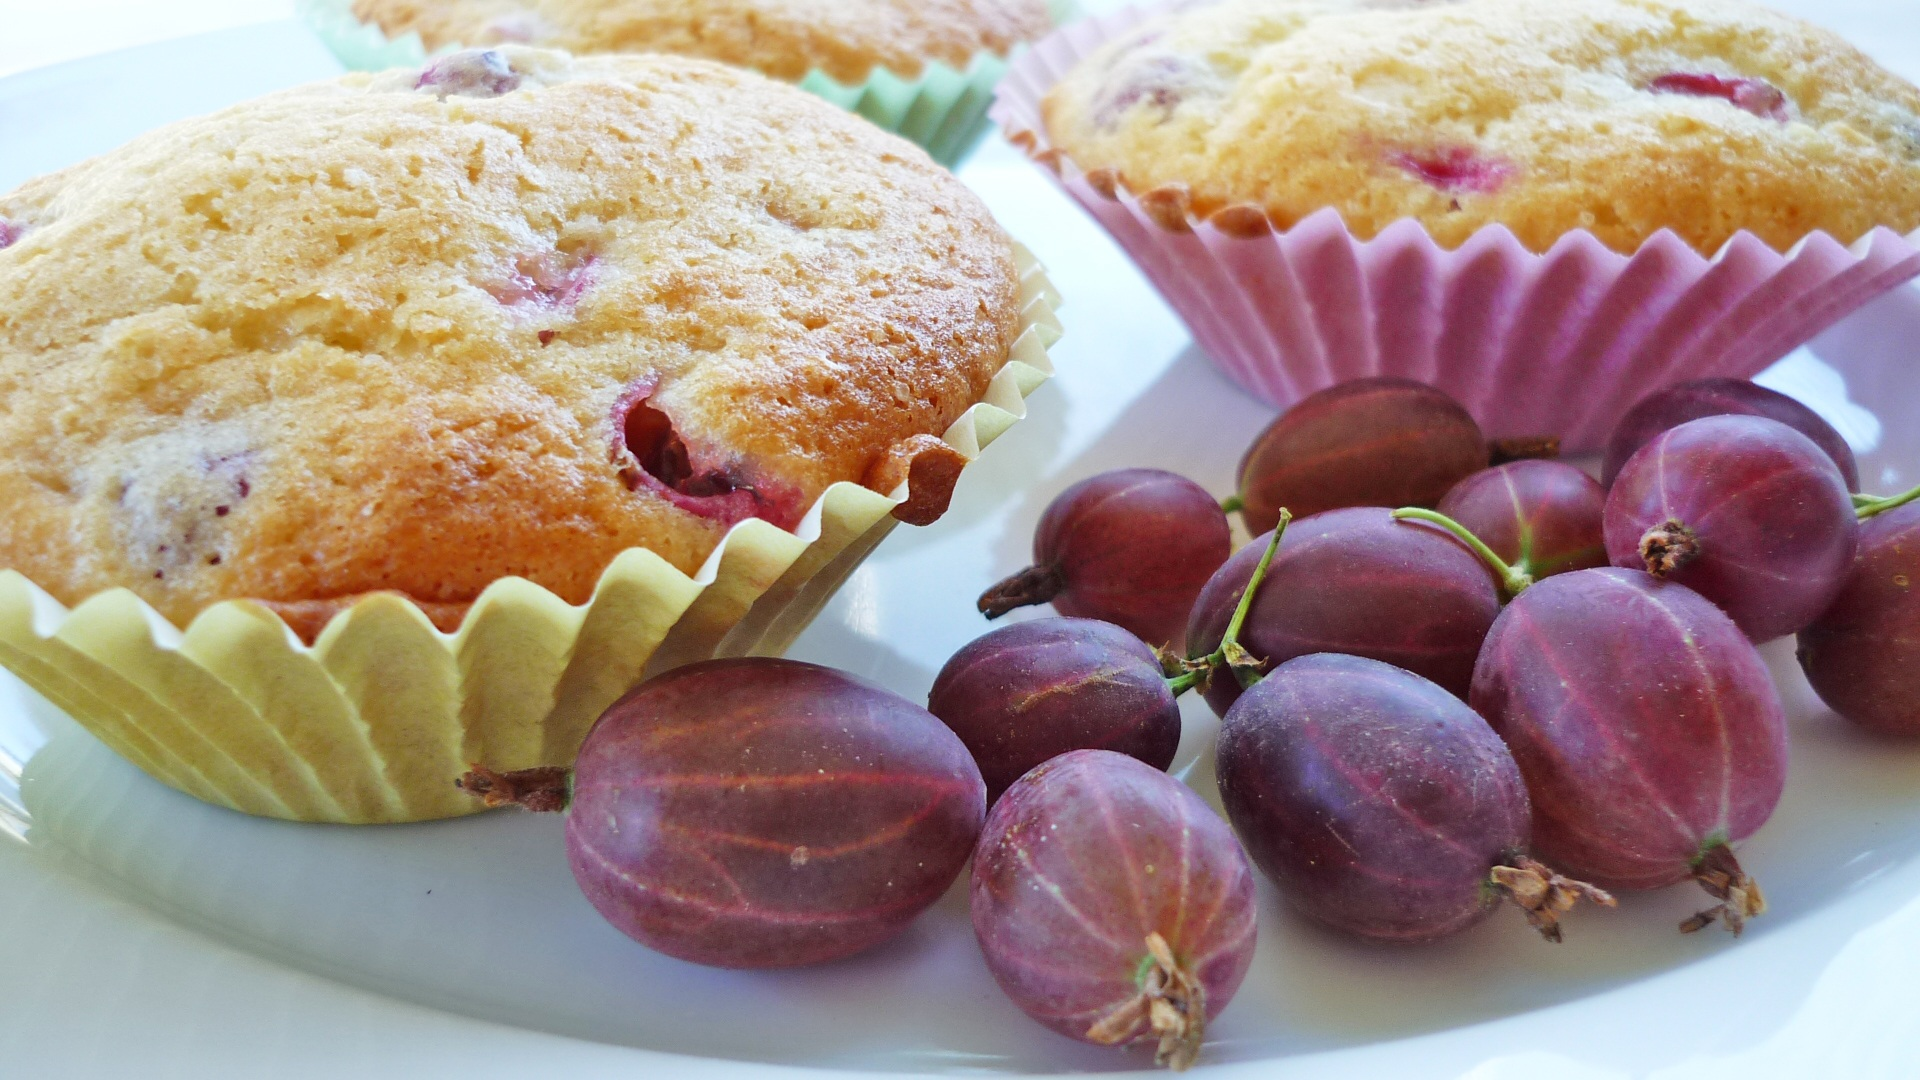 Baked muffins photo